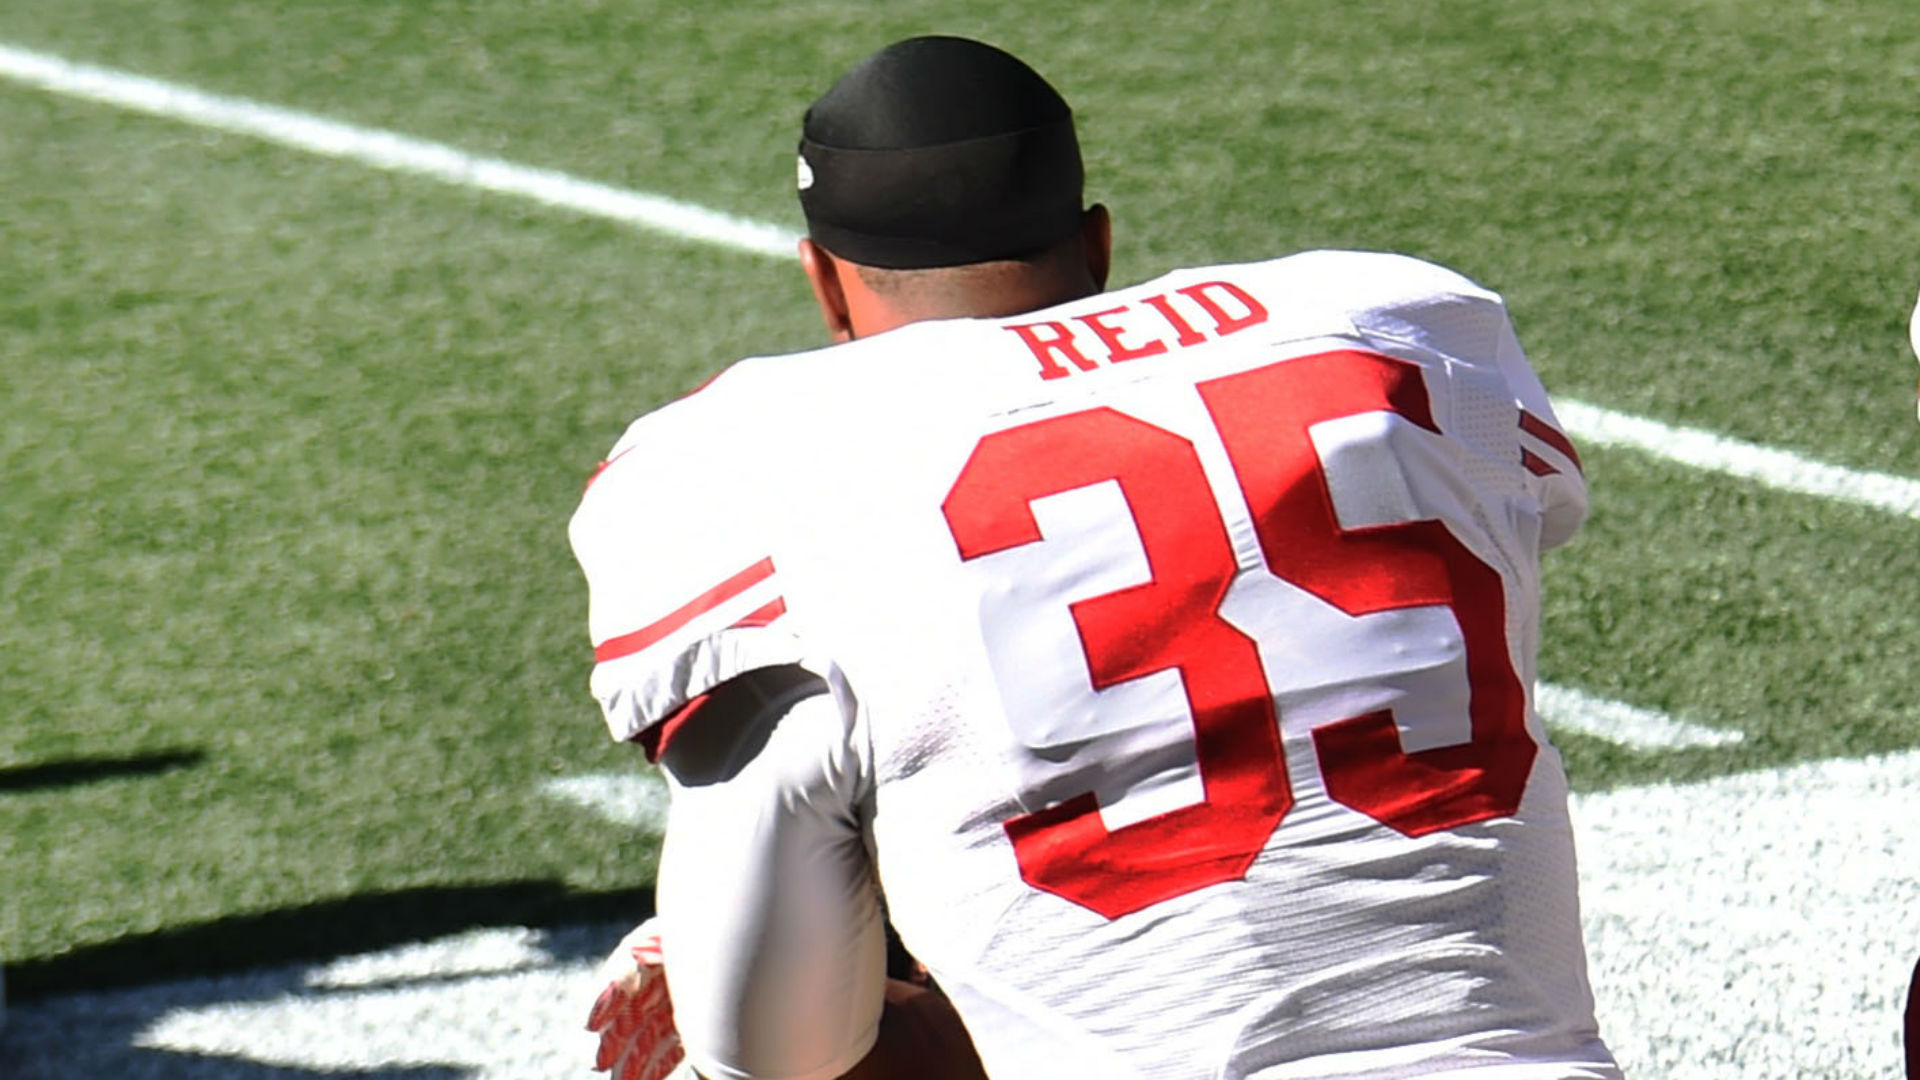 eric reid jersey cheap